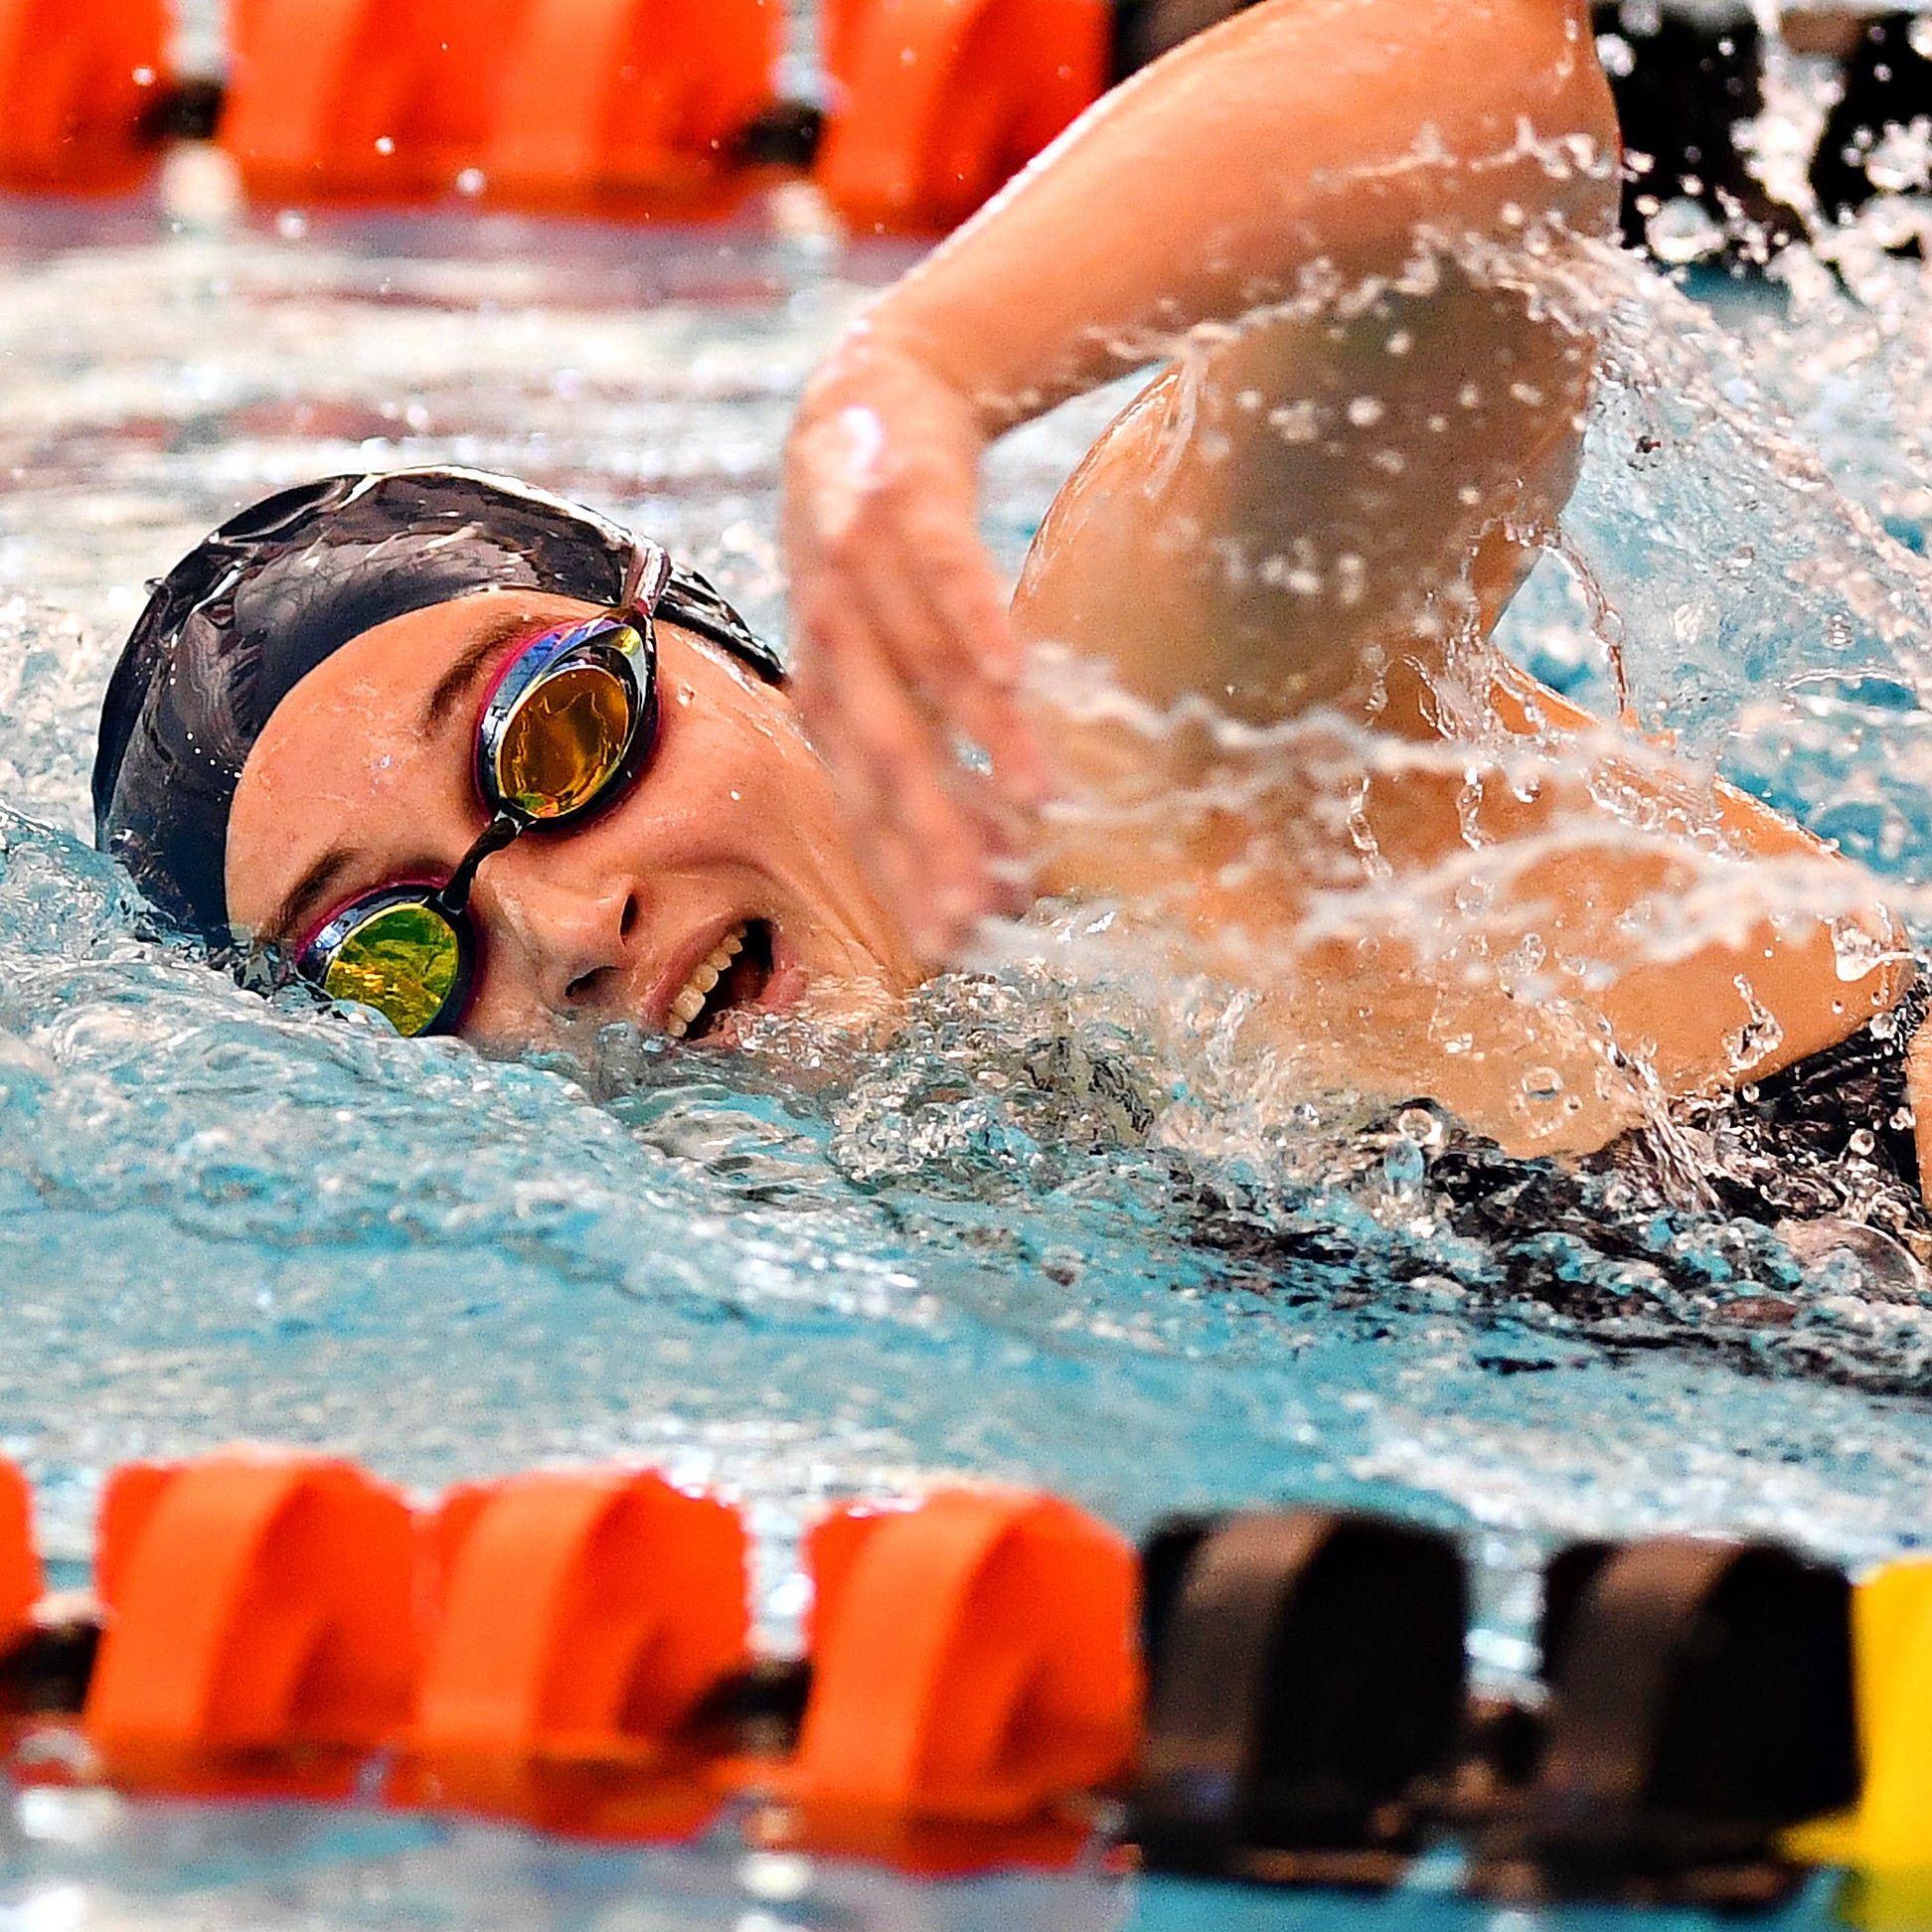 HEISER: West York's Meghan French and Meaghan Harnish may make waves at PIAA swim meet